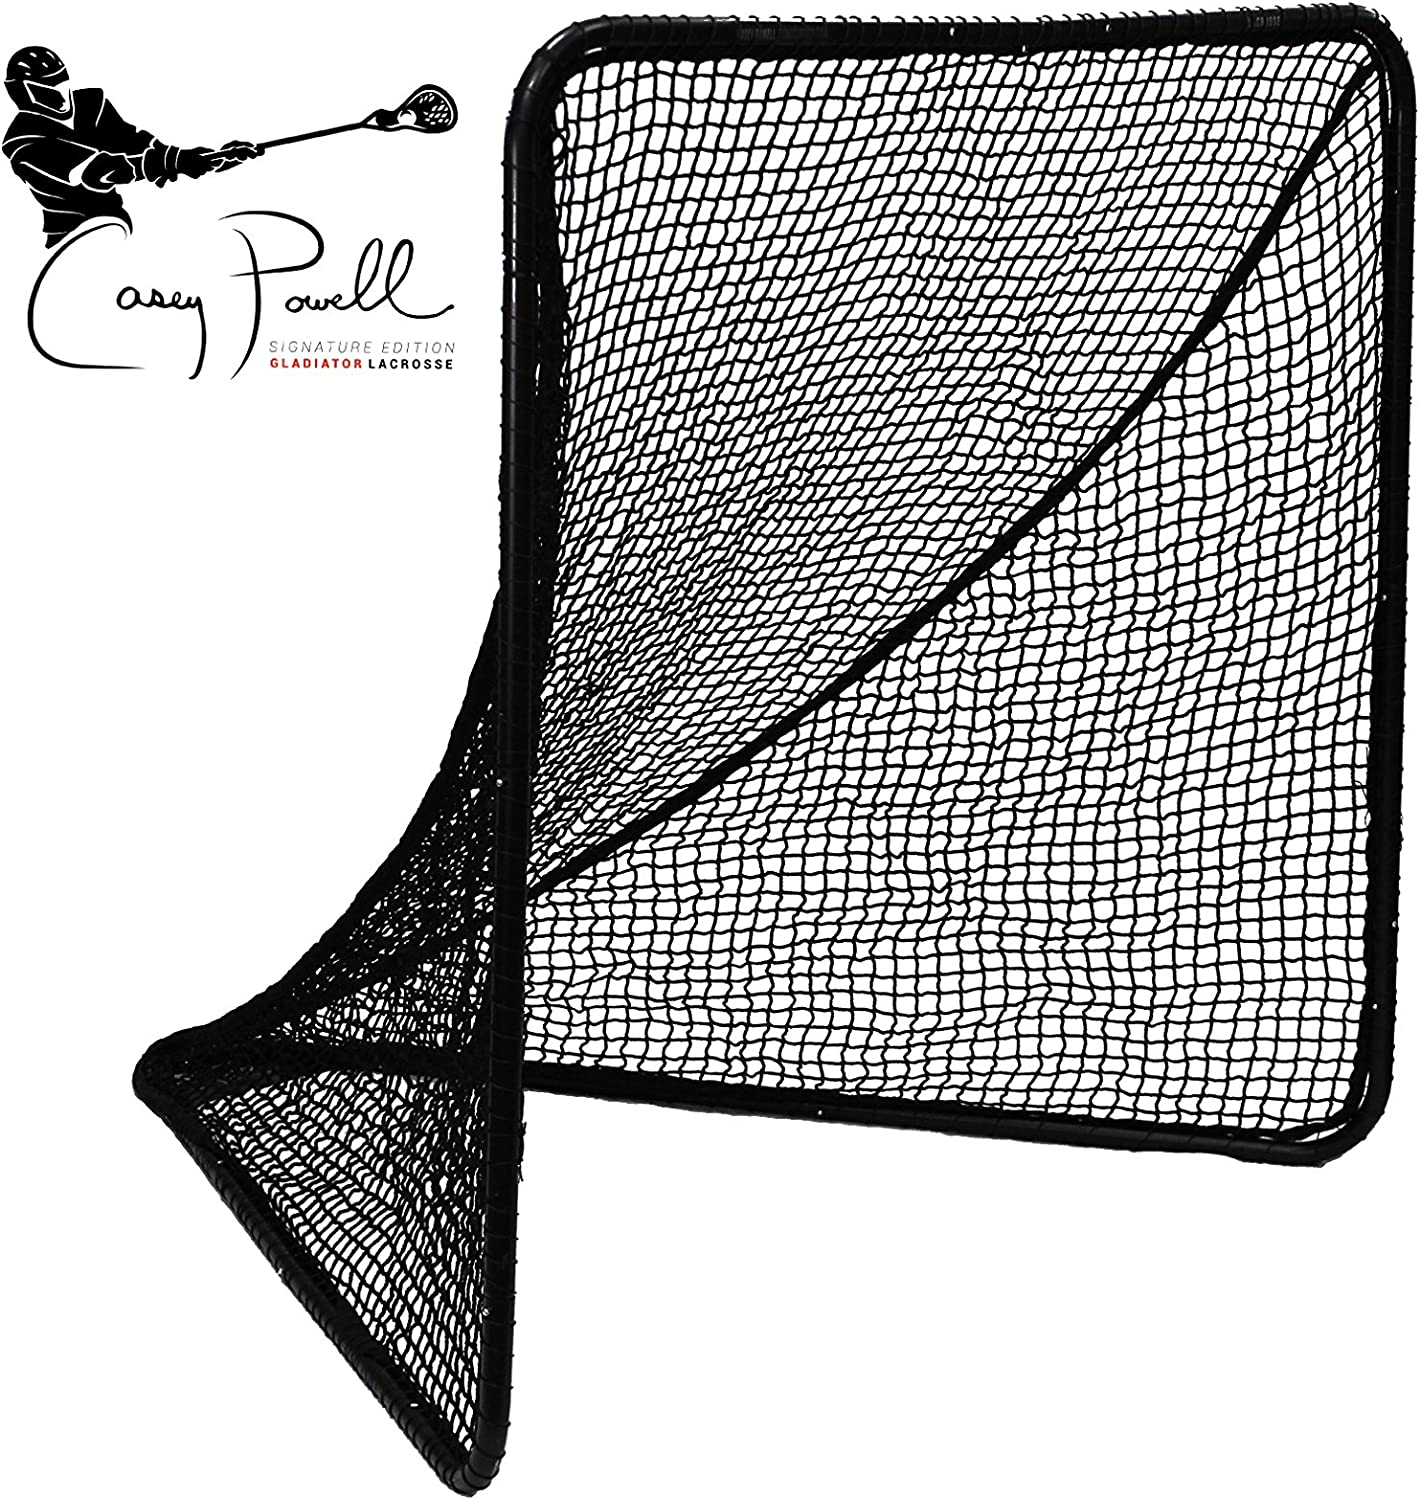 Gladiator Lacrosse Gladiator Official Lacrosse Goal Net - Casey Powell Signature Edition, 852624005059 : Sports & Outdoors